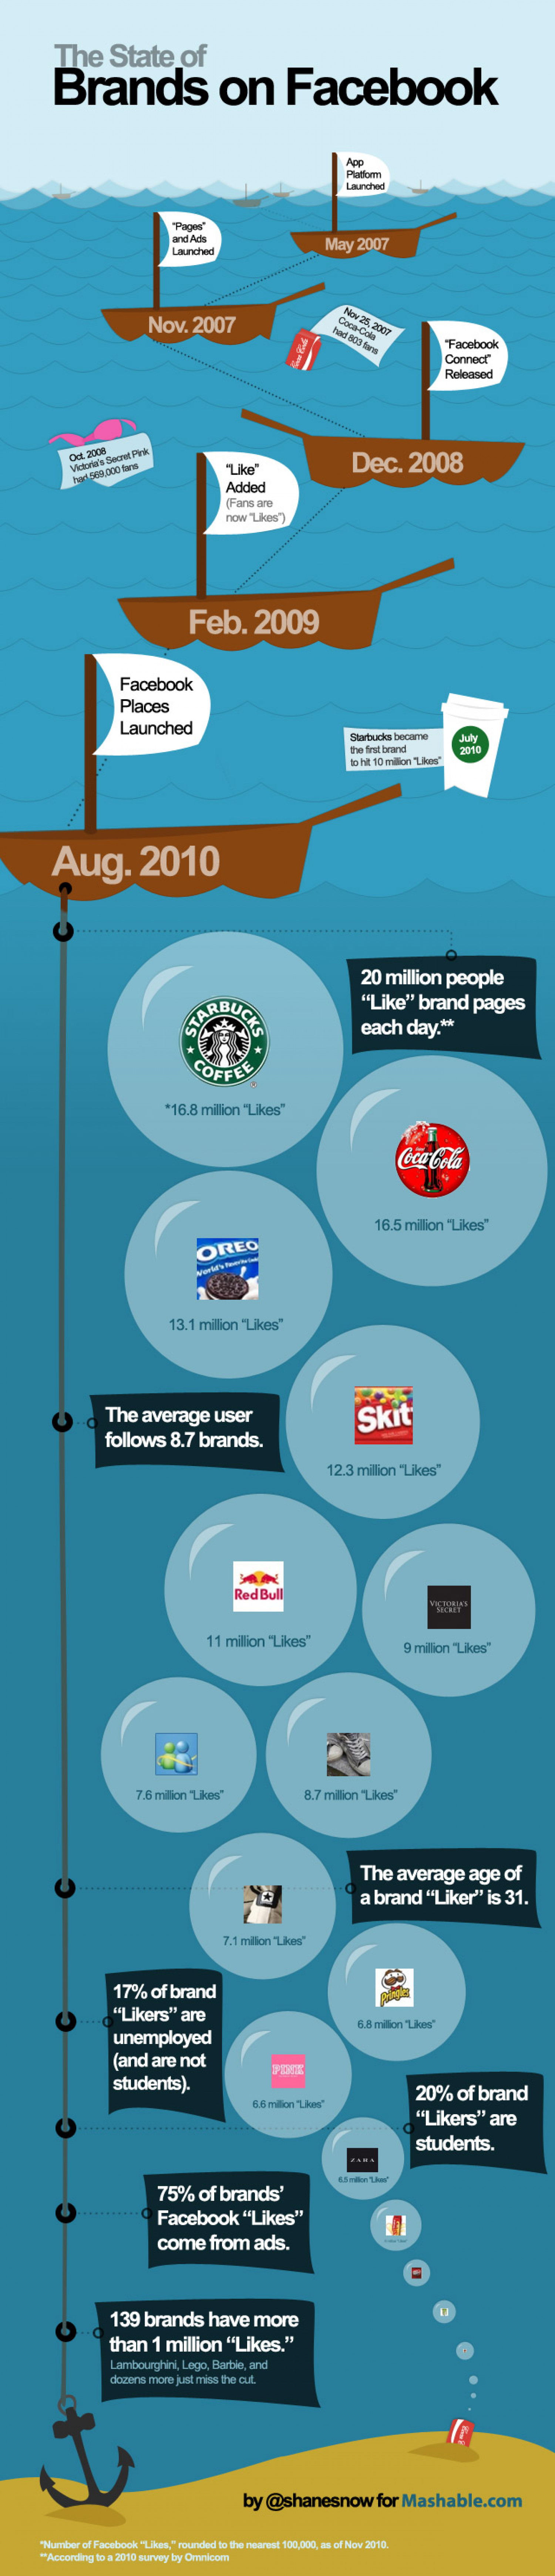 The State Of Brands On Facebook - Infographic